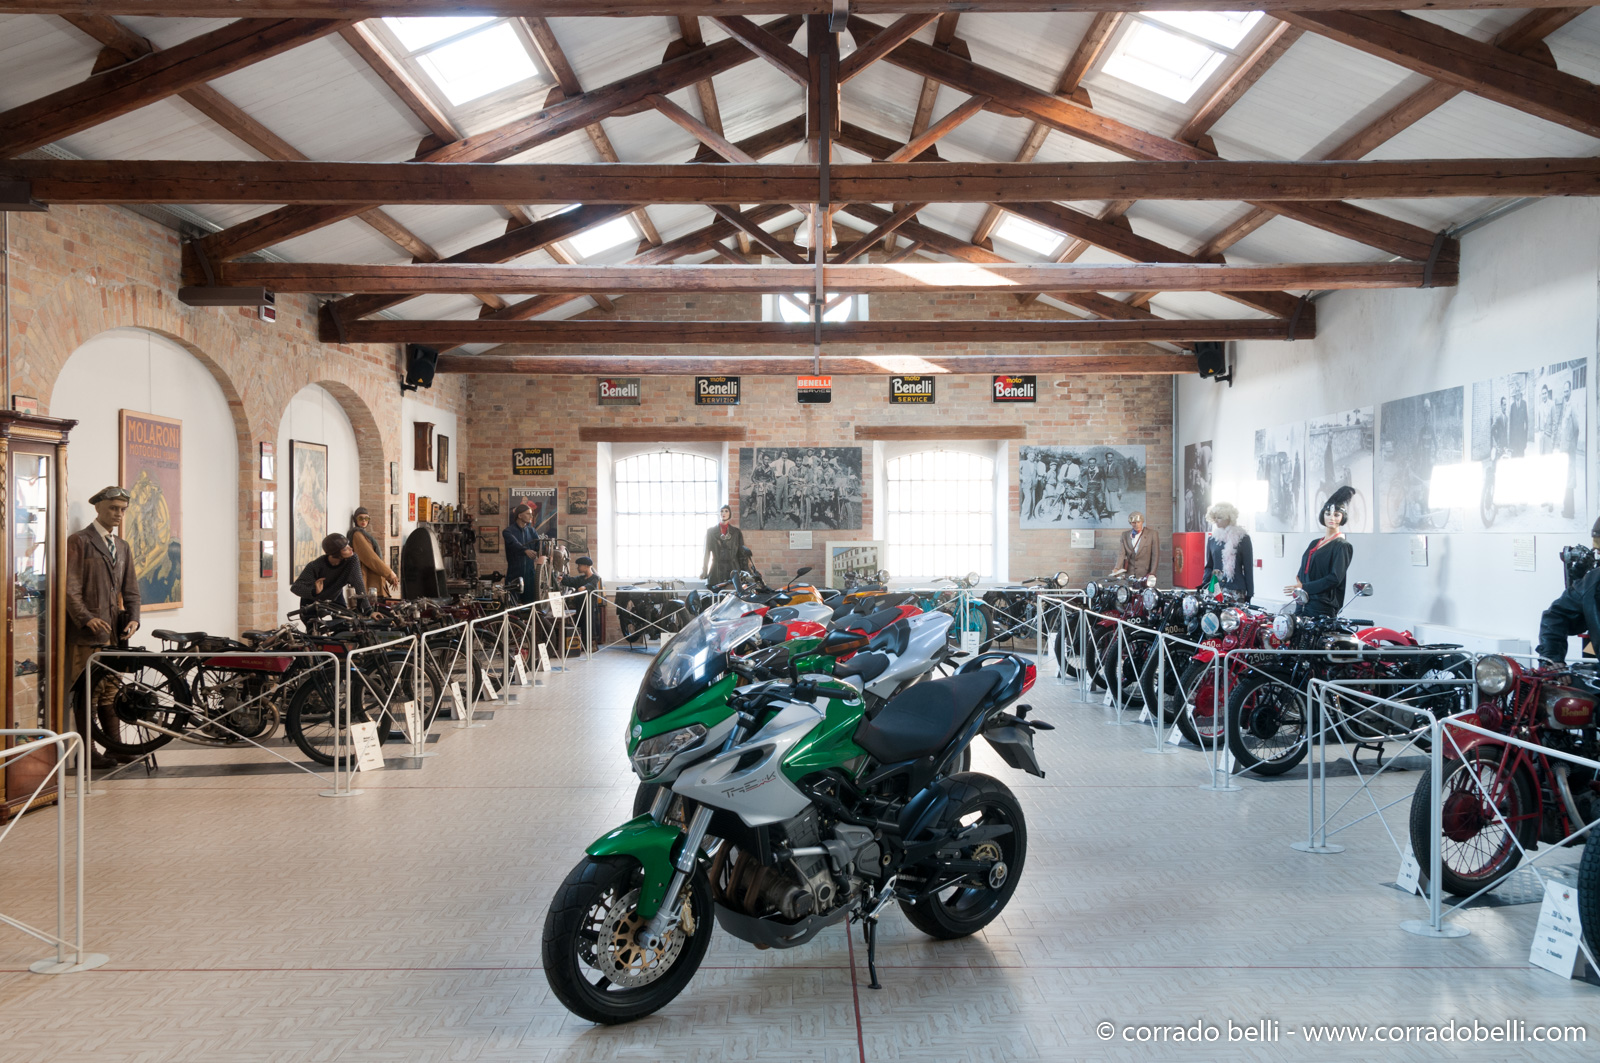 Italy's Ministry Of Culture Funds To Invest €2M In National Motorcycle Museum